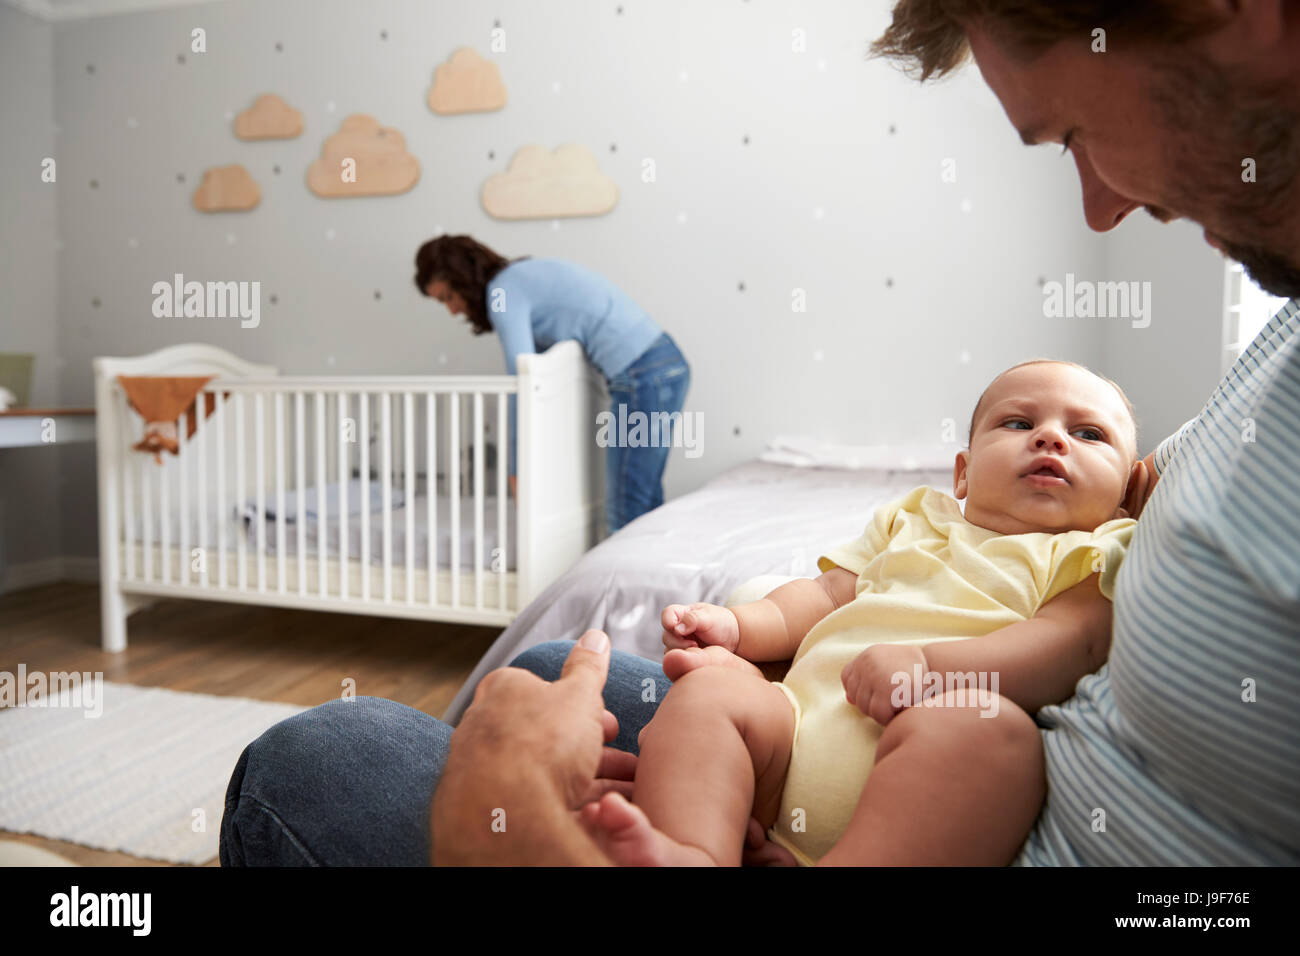 Mother Making Up Bed In Nursery Cot For Newborn Son - Stock Image